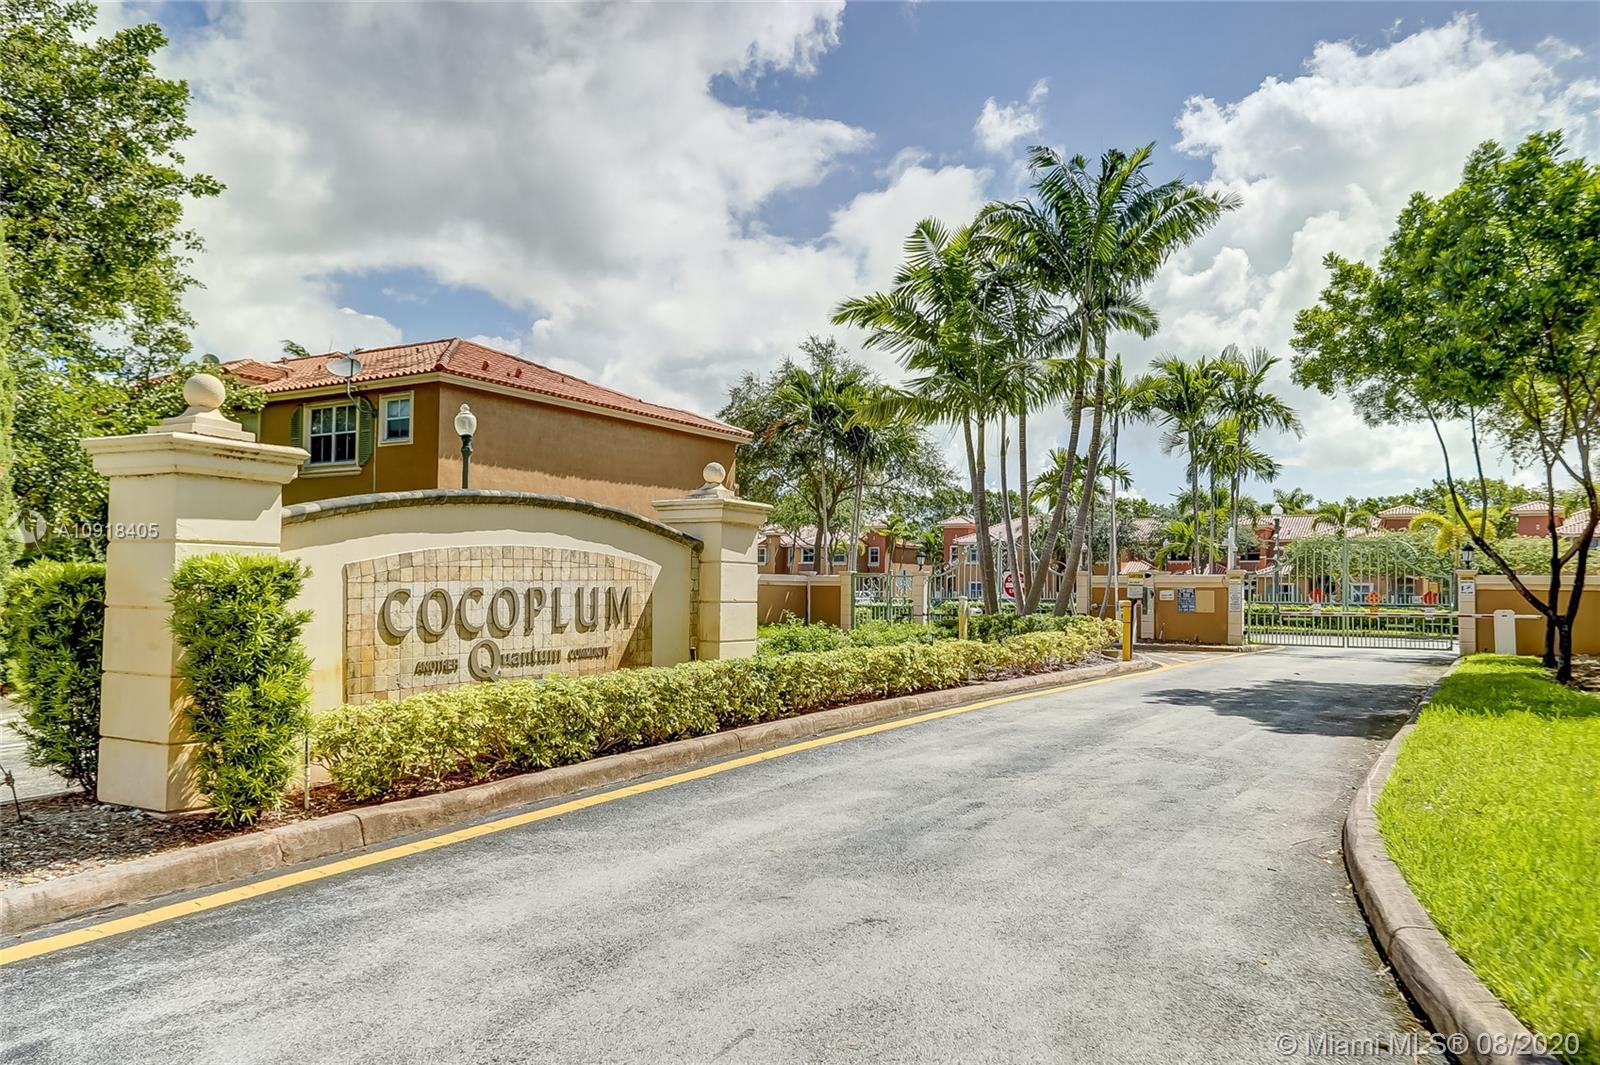 Beautiful townhome with 2 bedrooms and 2.5 bathrooms built in 2005 in a small exclusive gated community! Located a moment away from the world famous guitar hotel and Hard Rock Casino and a short drive to Fort Lauderdale Airport and Fort Lauderdale Beach! Tastefully updated kitchen with an open layout, quartz countertops and wood cabinets. Features a private fenced outdoor area, ALL IMPACT WINDOWS, spacious entertaining space downstairs and large bedrooms upstairs. Located close to 5 star restaurants, shops and has easy access to highways!